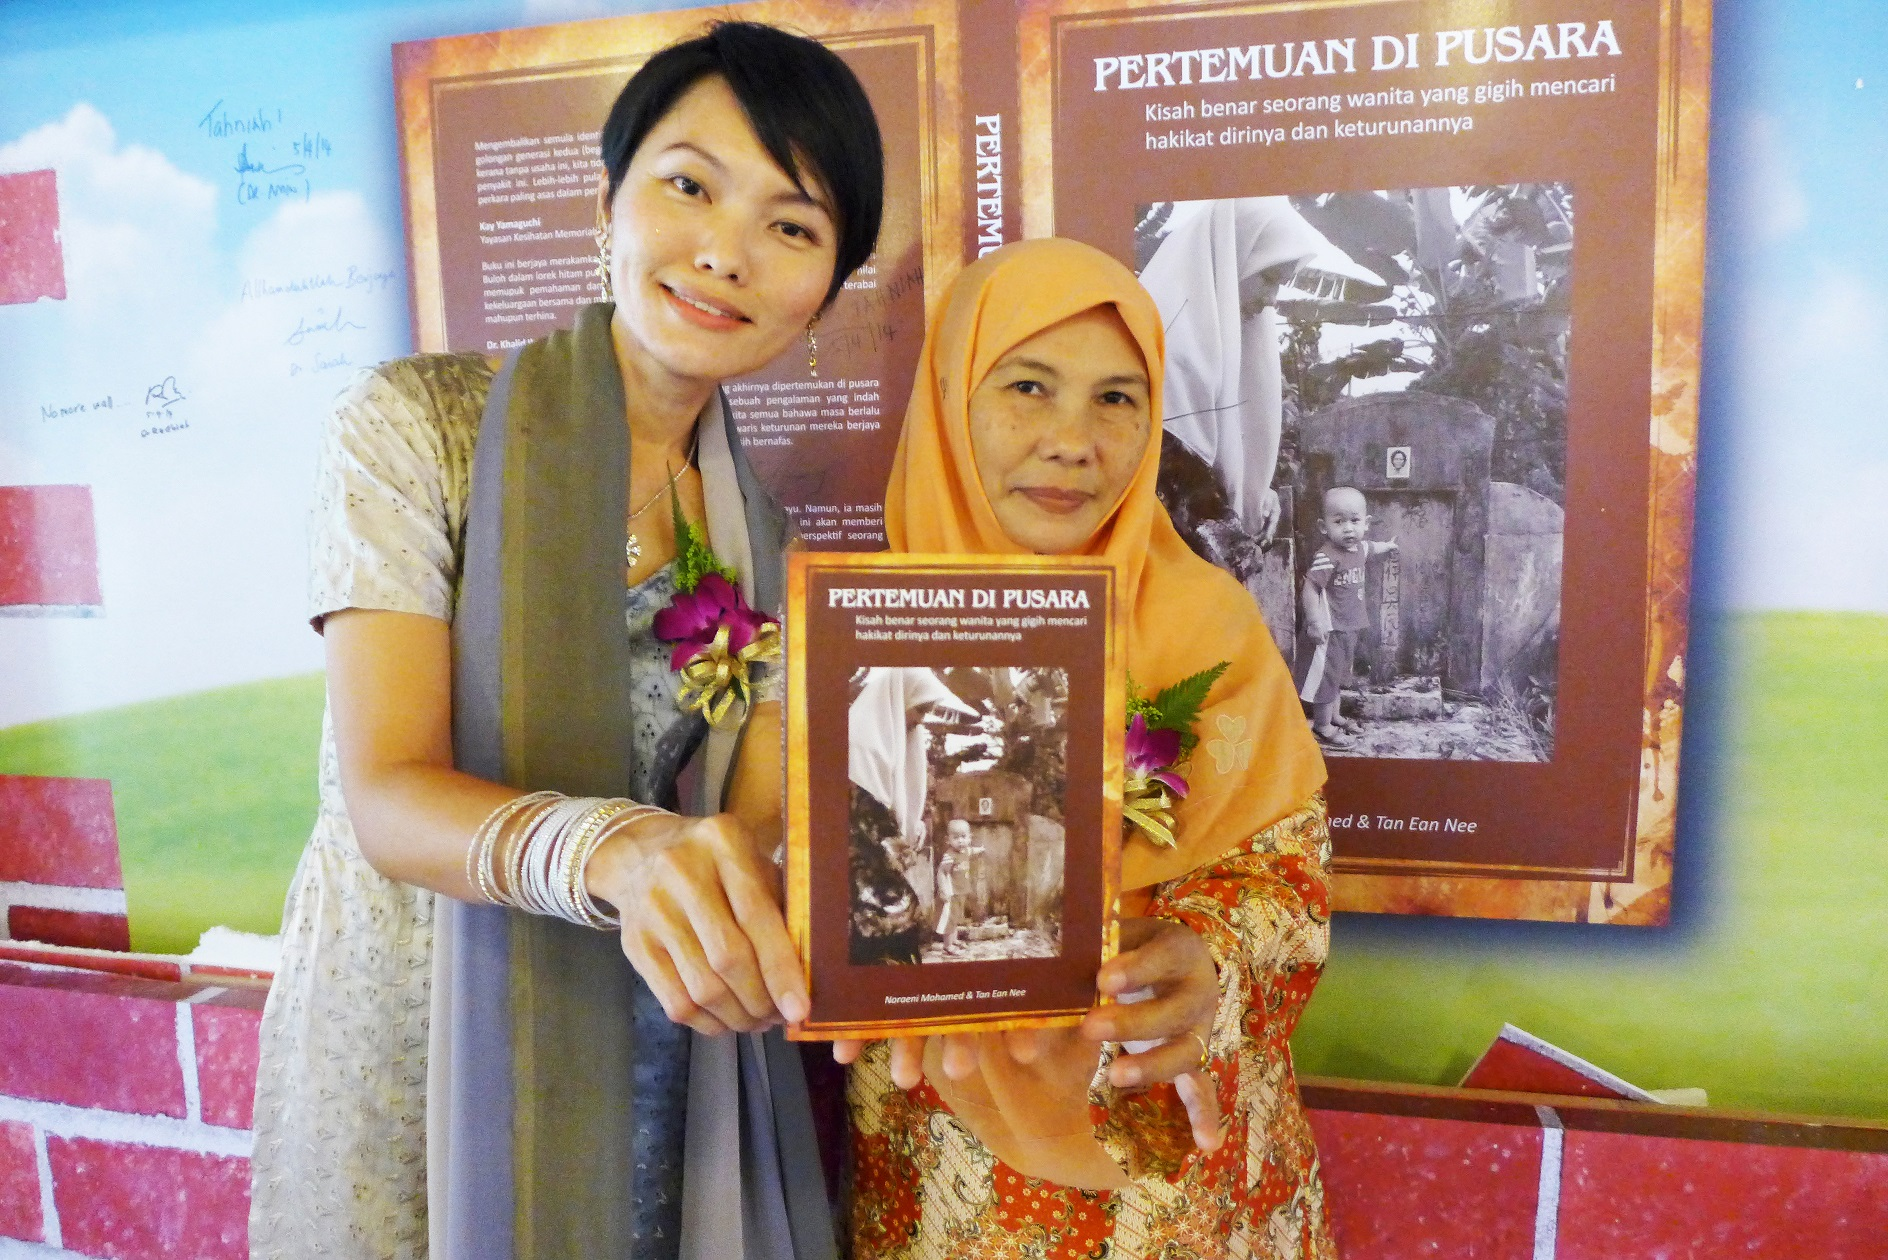 Pertemuan Di Pusara, Malay Edition, co-authored by Noraeni Mohamed & Tan Ean Nee, 2014. (photo by Tan Ean Nee)